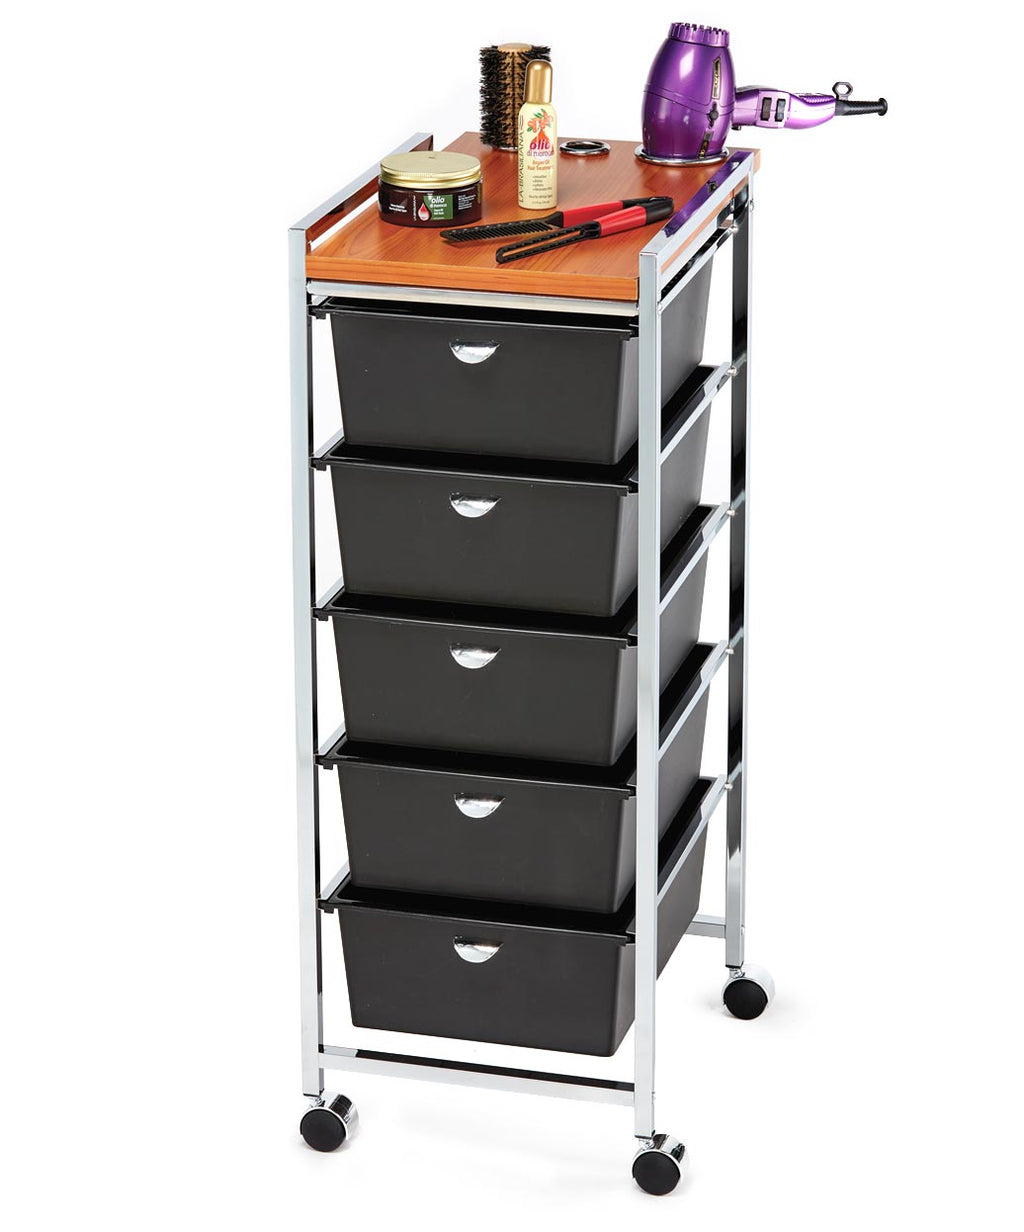 Pibbs D29 5-Drawer Professional Utility Cart Styling Station Wood